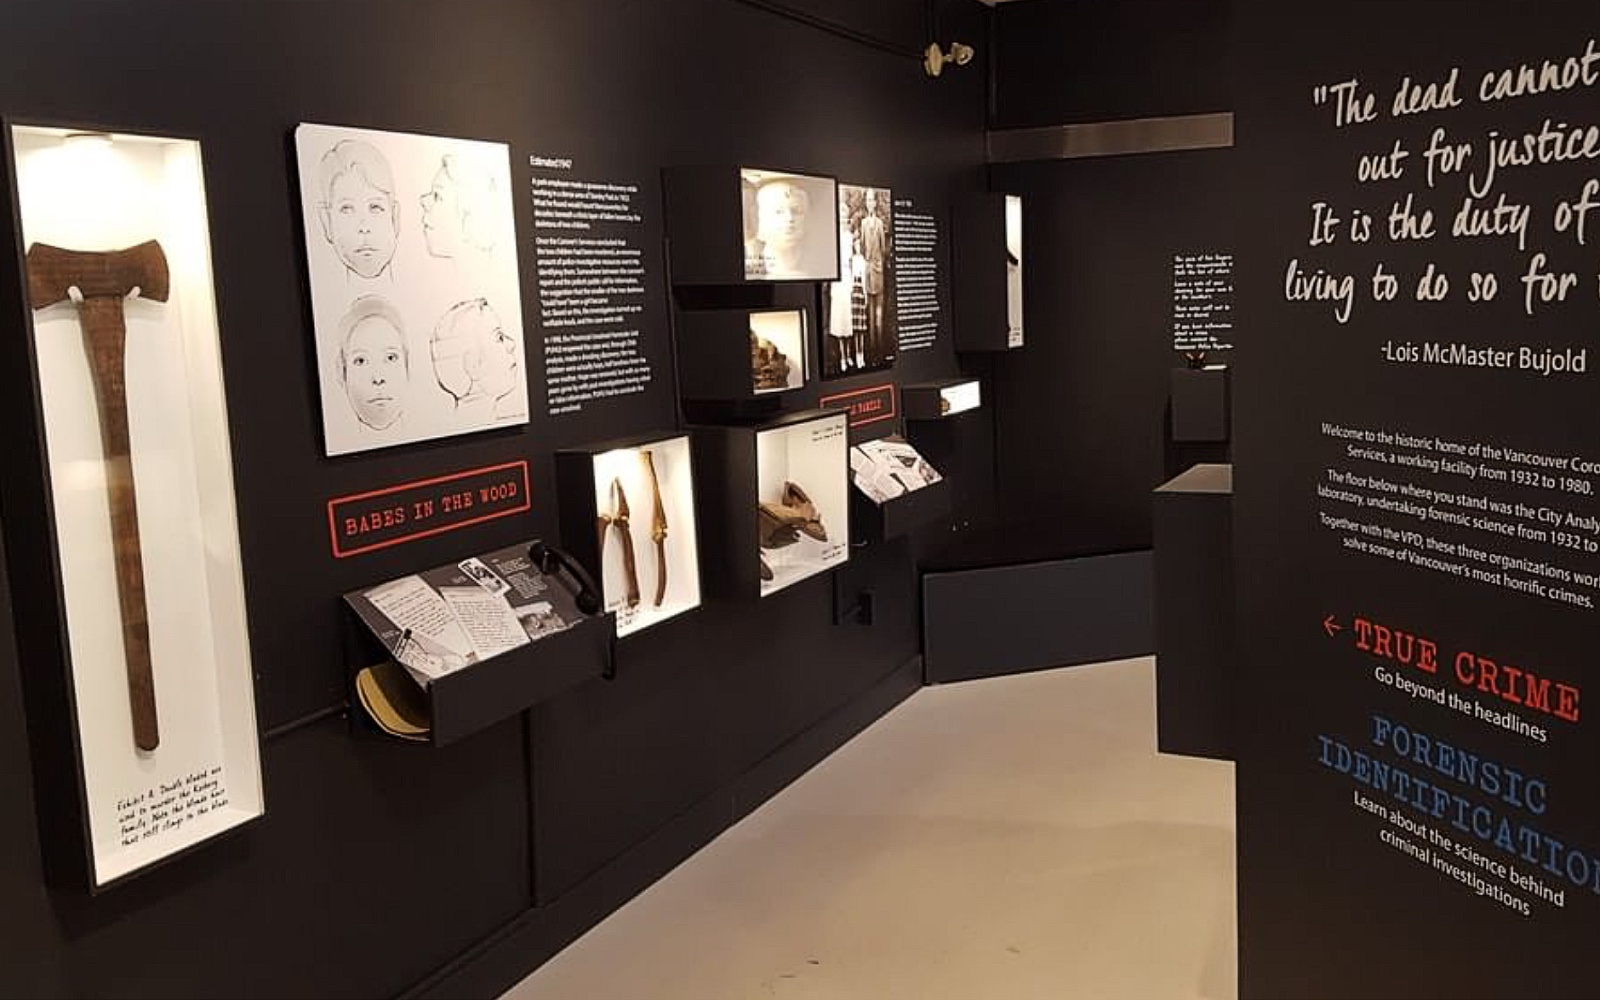 The True Crime Exhibit at the Vancouver Police Museum